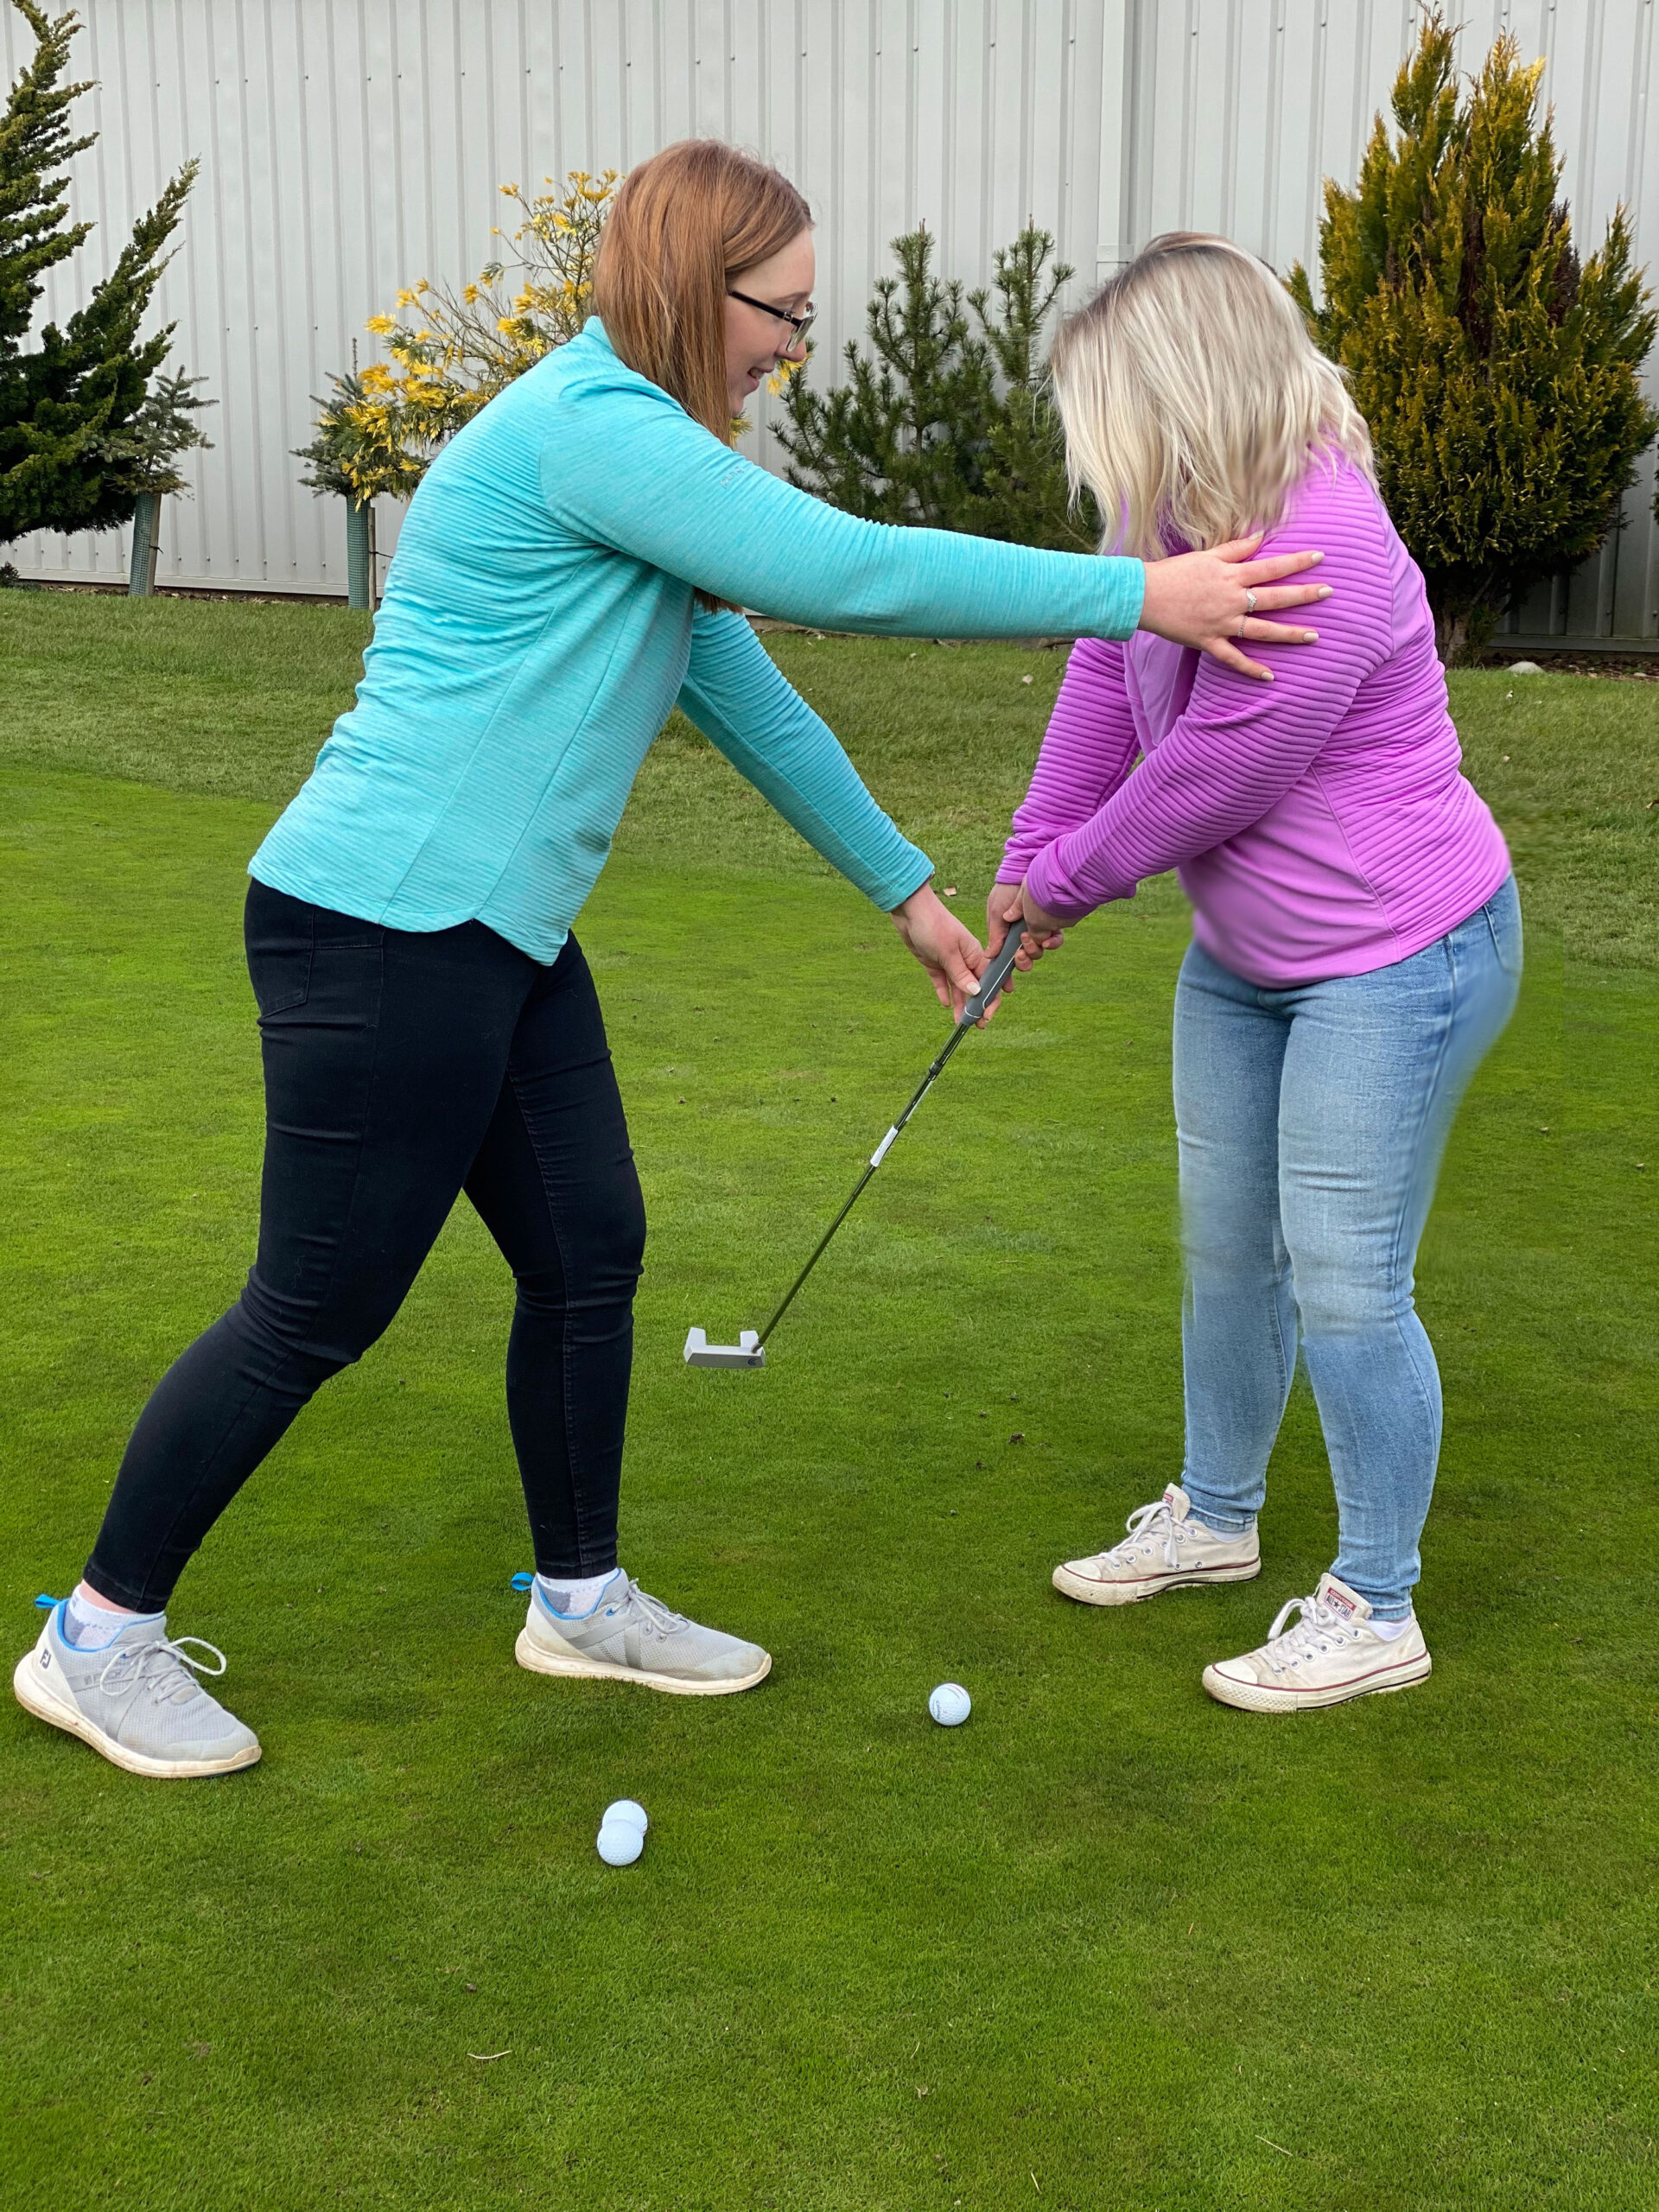 ladies golf lessons Peter field golf shop Norwich Norfolk